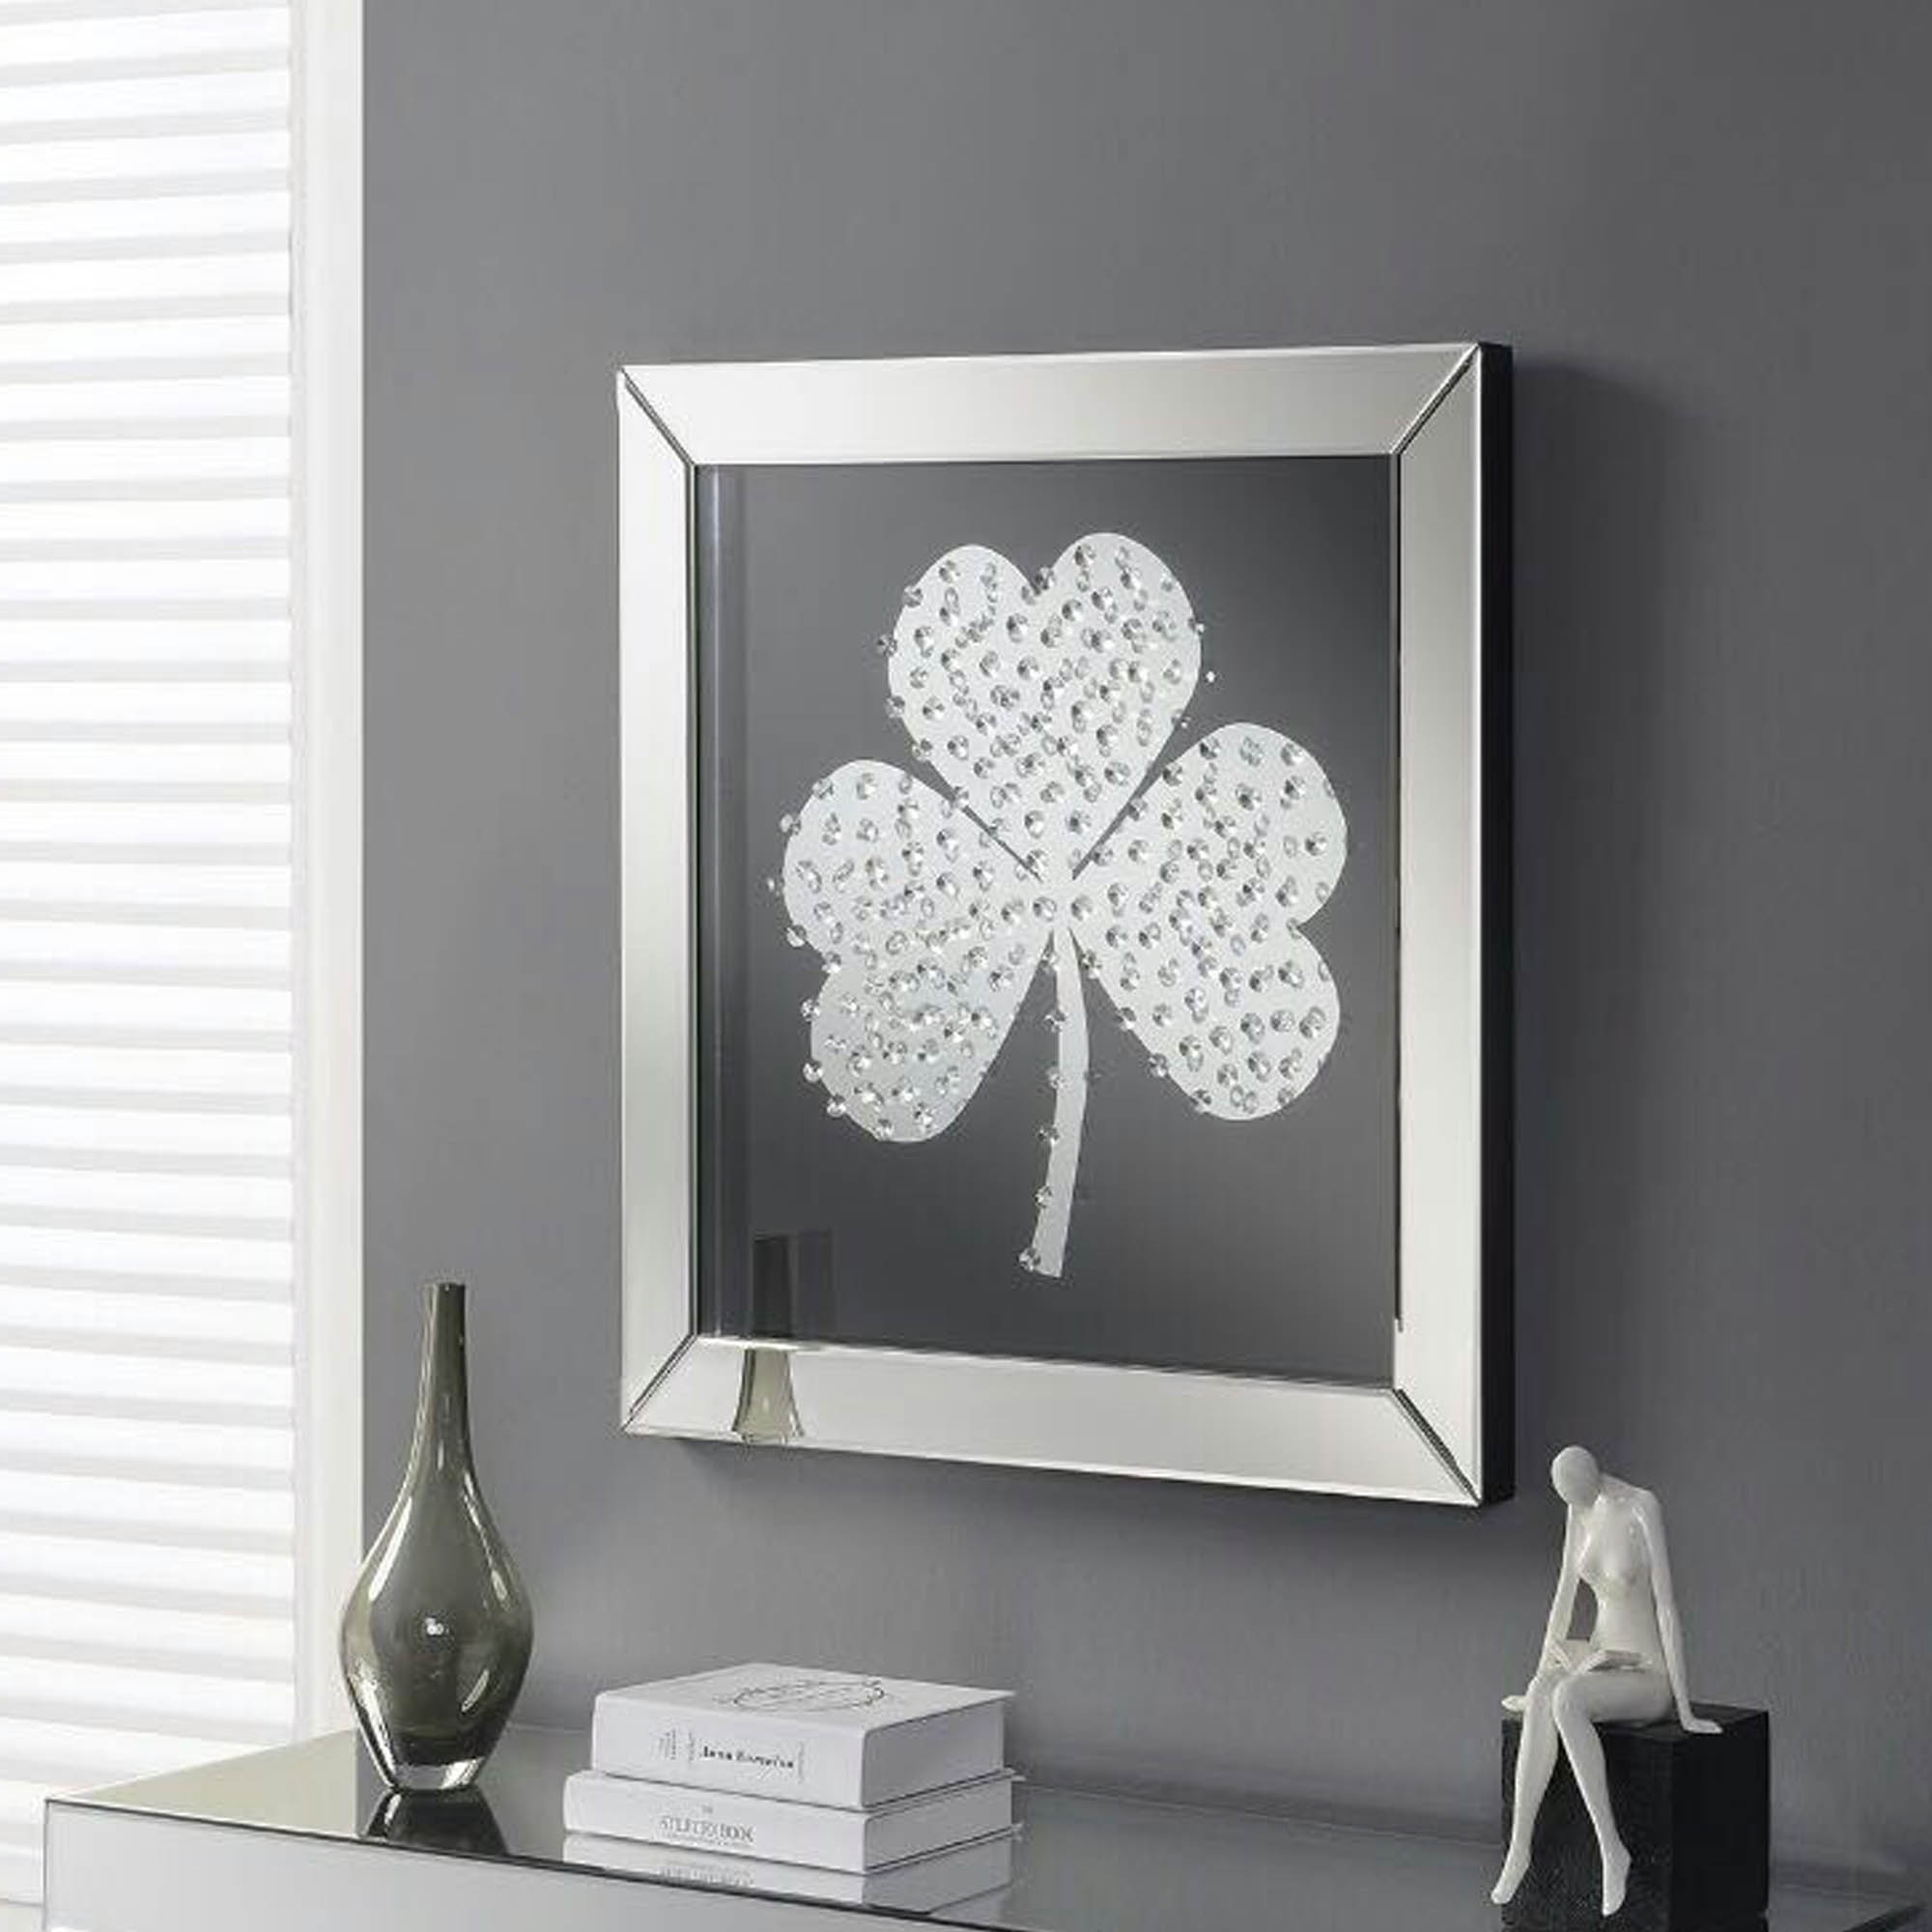 Shamrock Mirrored Wall Art | Wall Art | Homesdirect365 Regarding Most Recently Released Mirrored Wall Art (View 16 of 20)